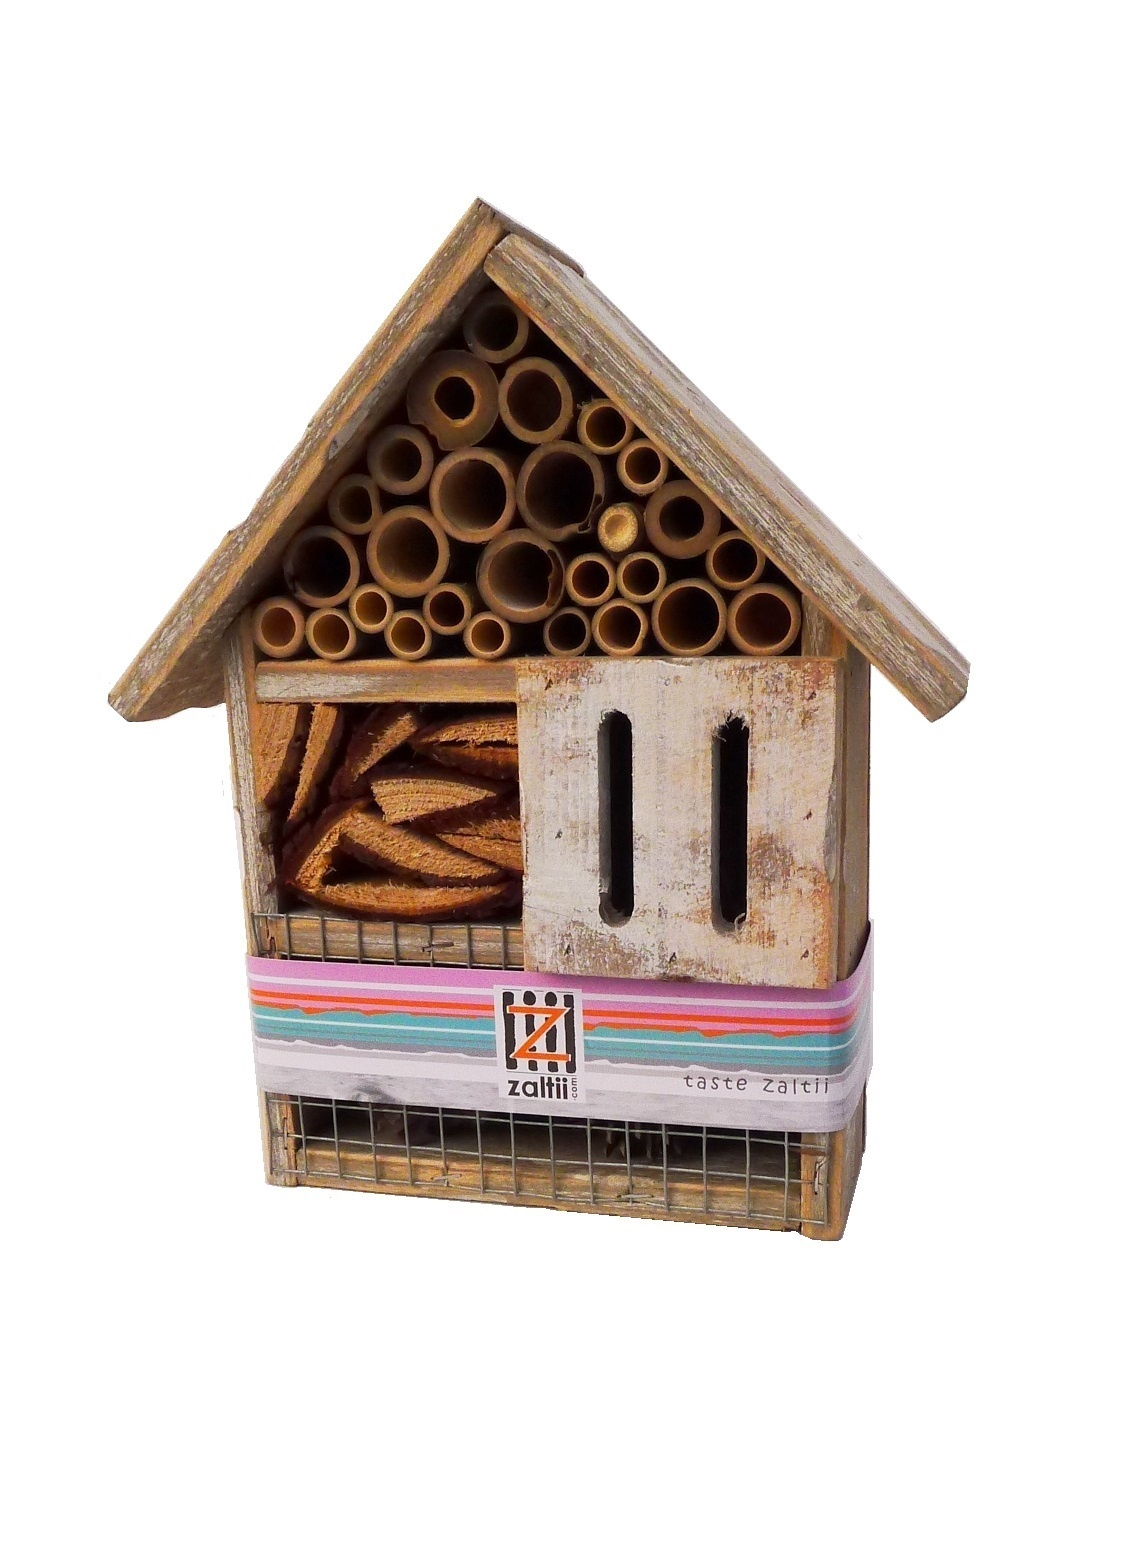 birdhouse old dutch insect hotel A wide-7